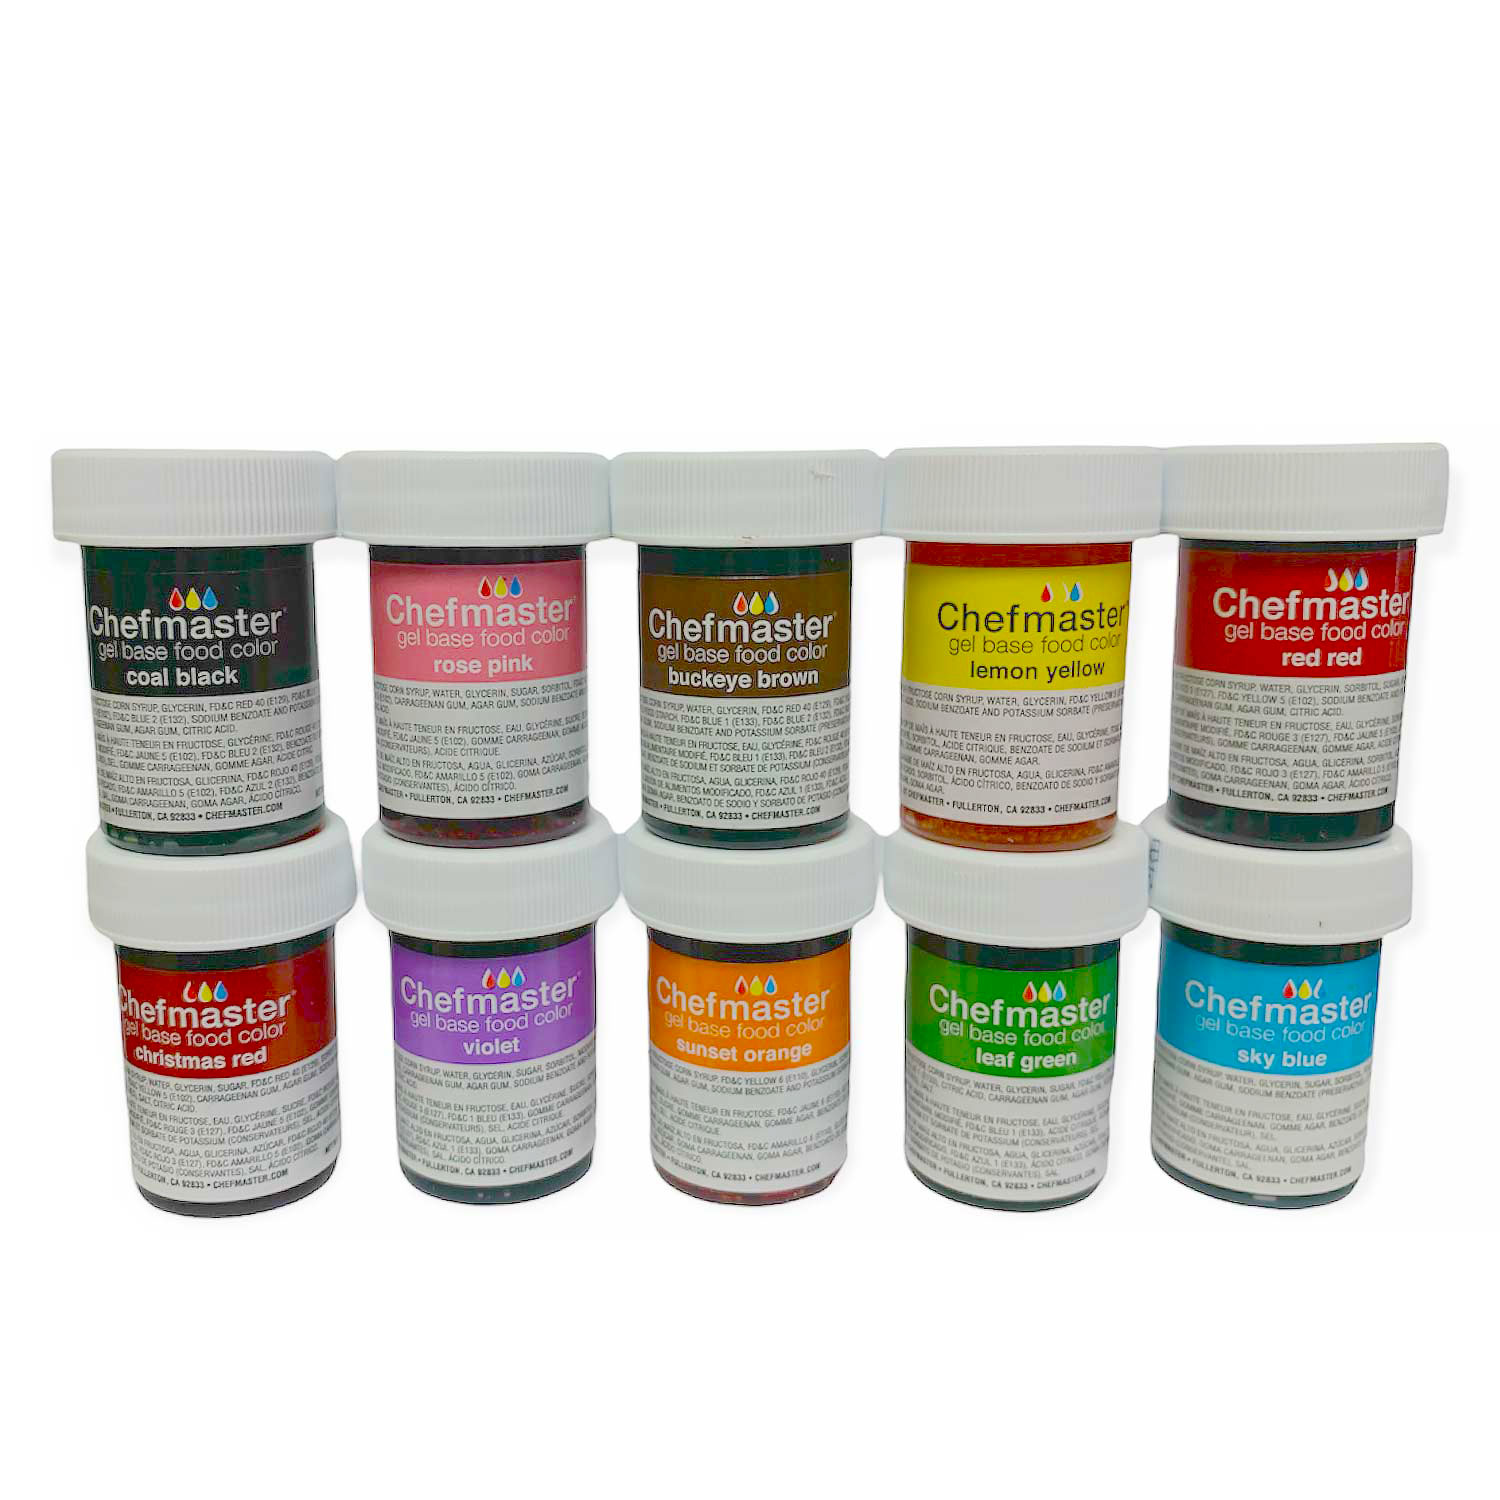 Chefmaster Senior Food Color Gel Kit (Old Item # 41-3160)